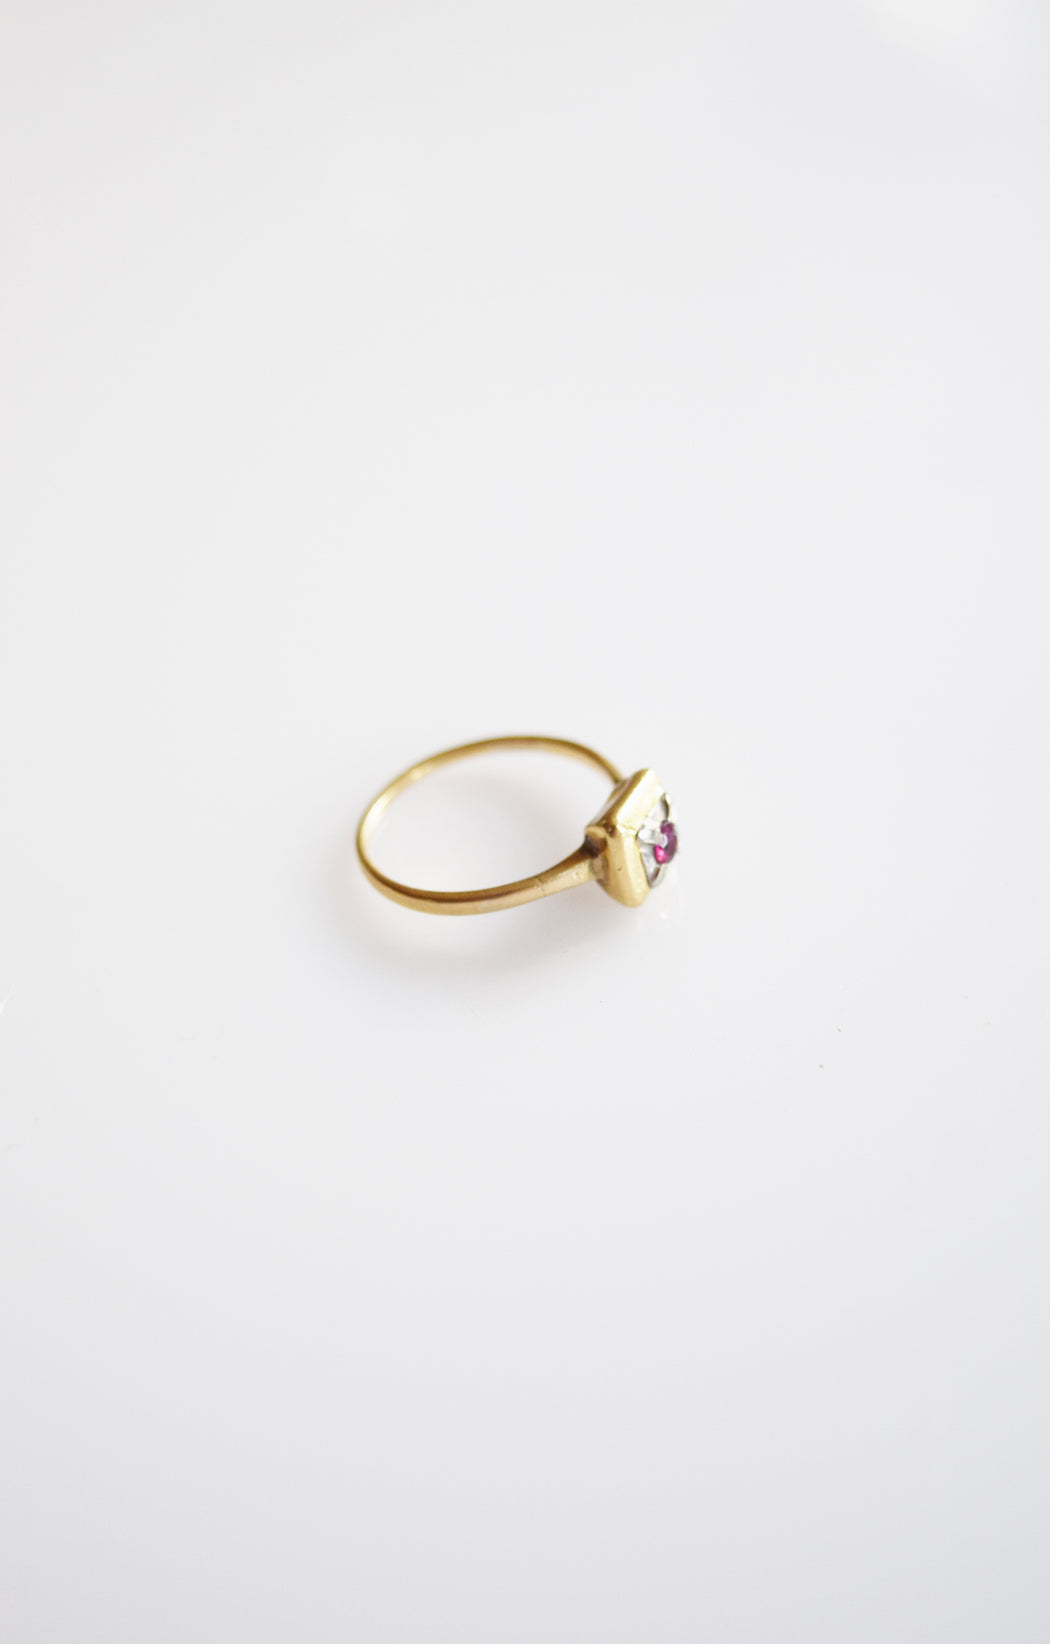 Art Deco 14k Gold and Garnet Stacking Ring | 6.5